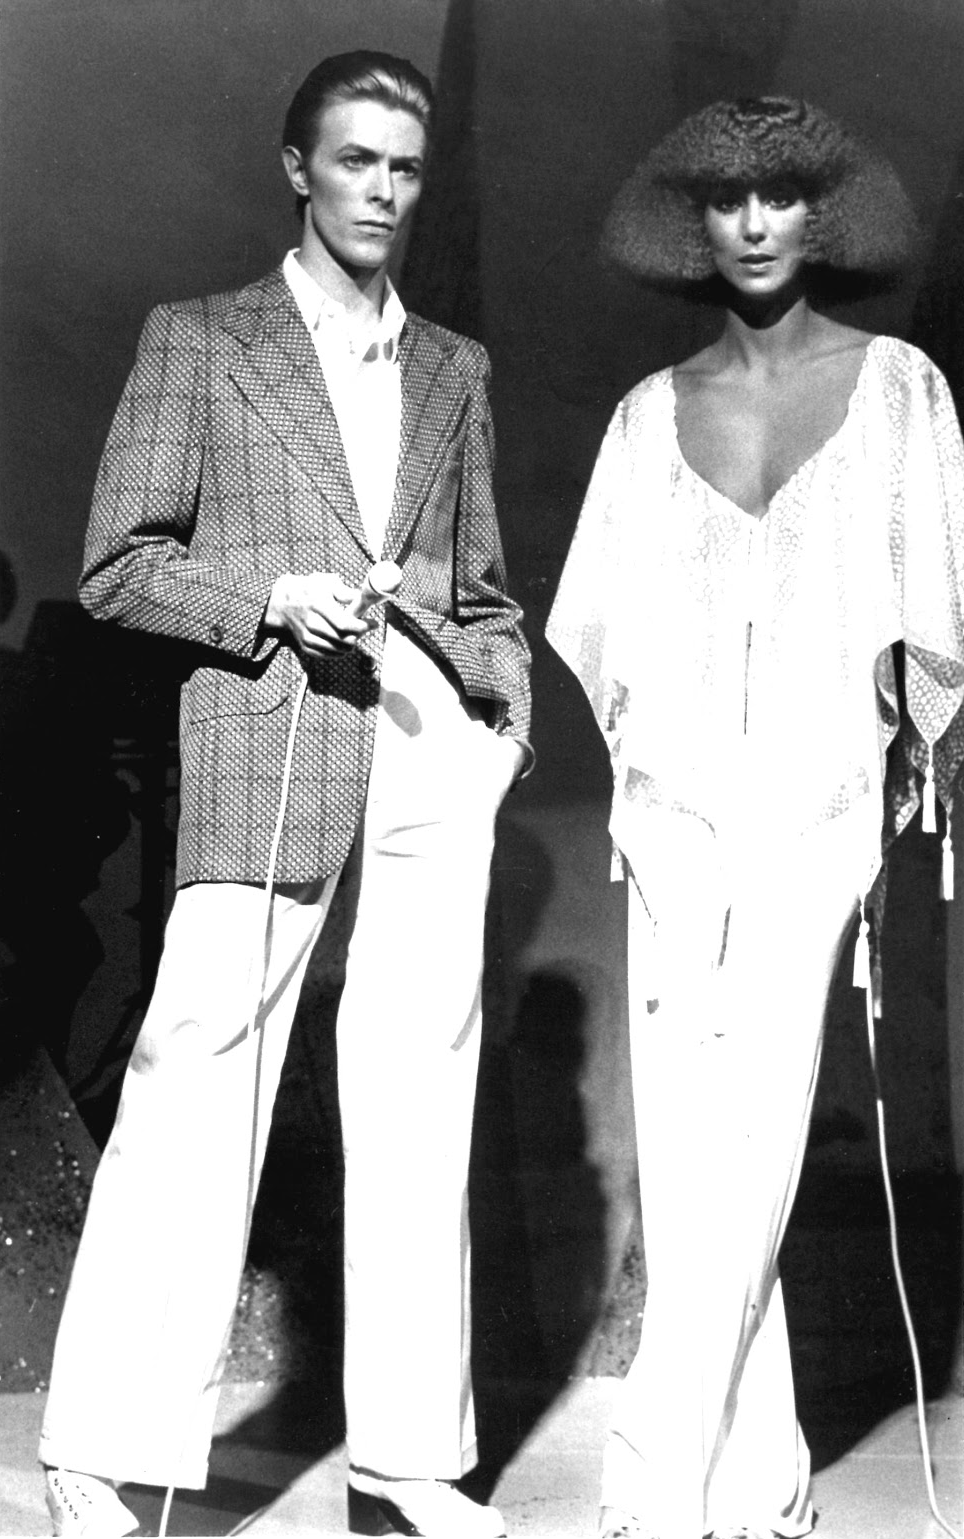 david bowie e cher buddies in 2018 pinterest bowie david and